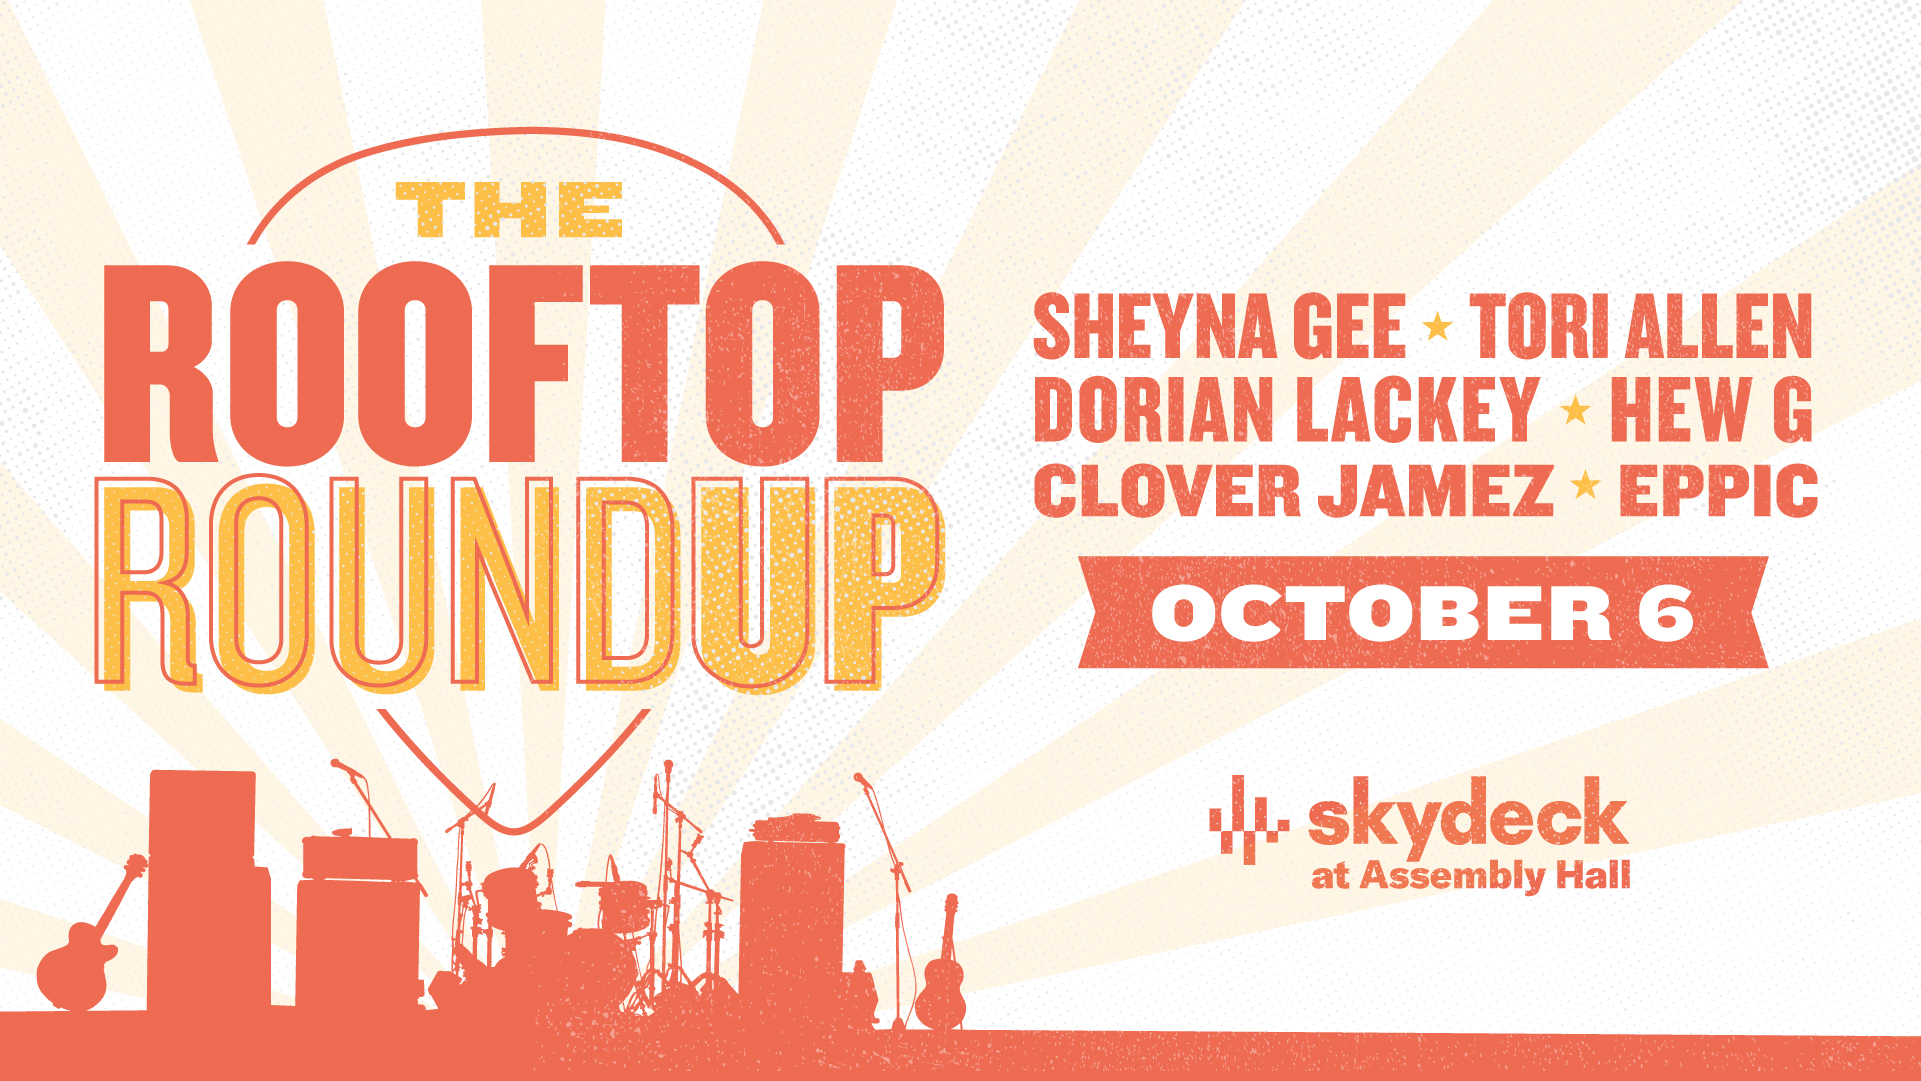 Promo image of The Rooftop Roundup on Skydeck